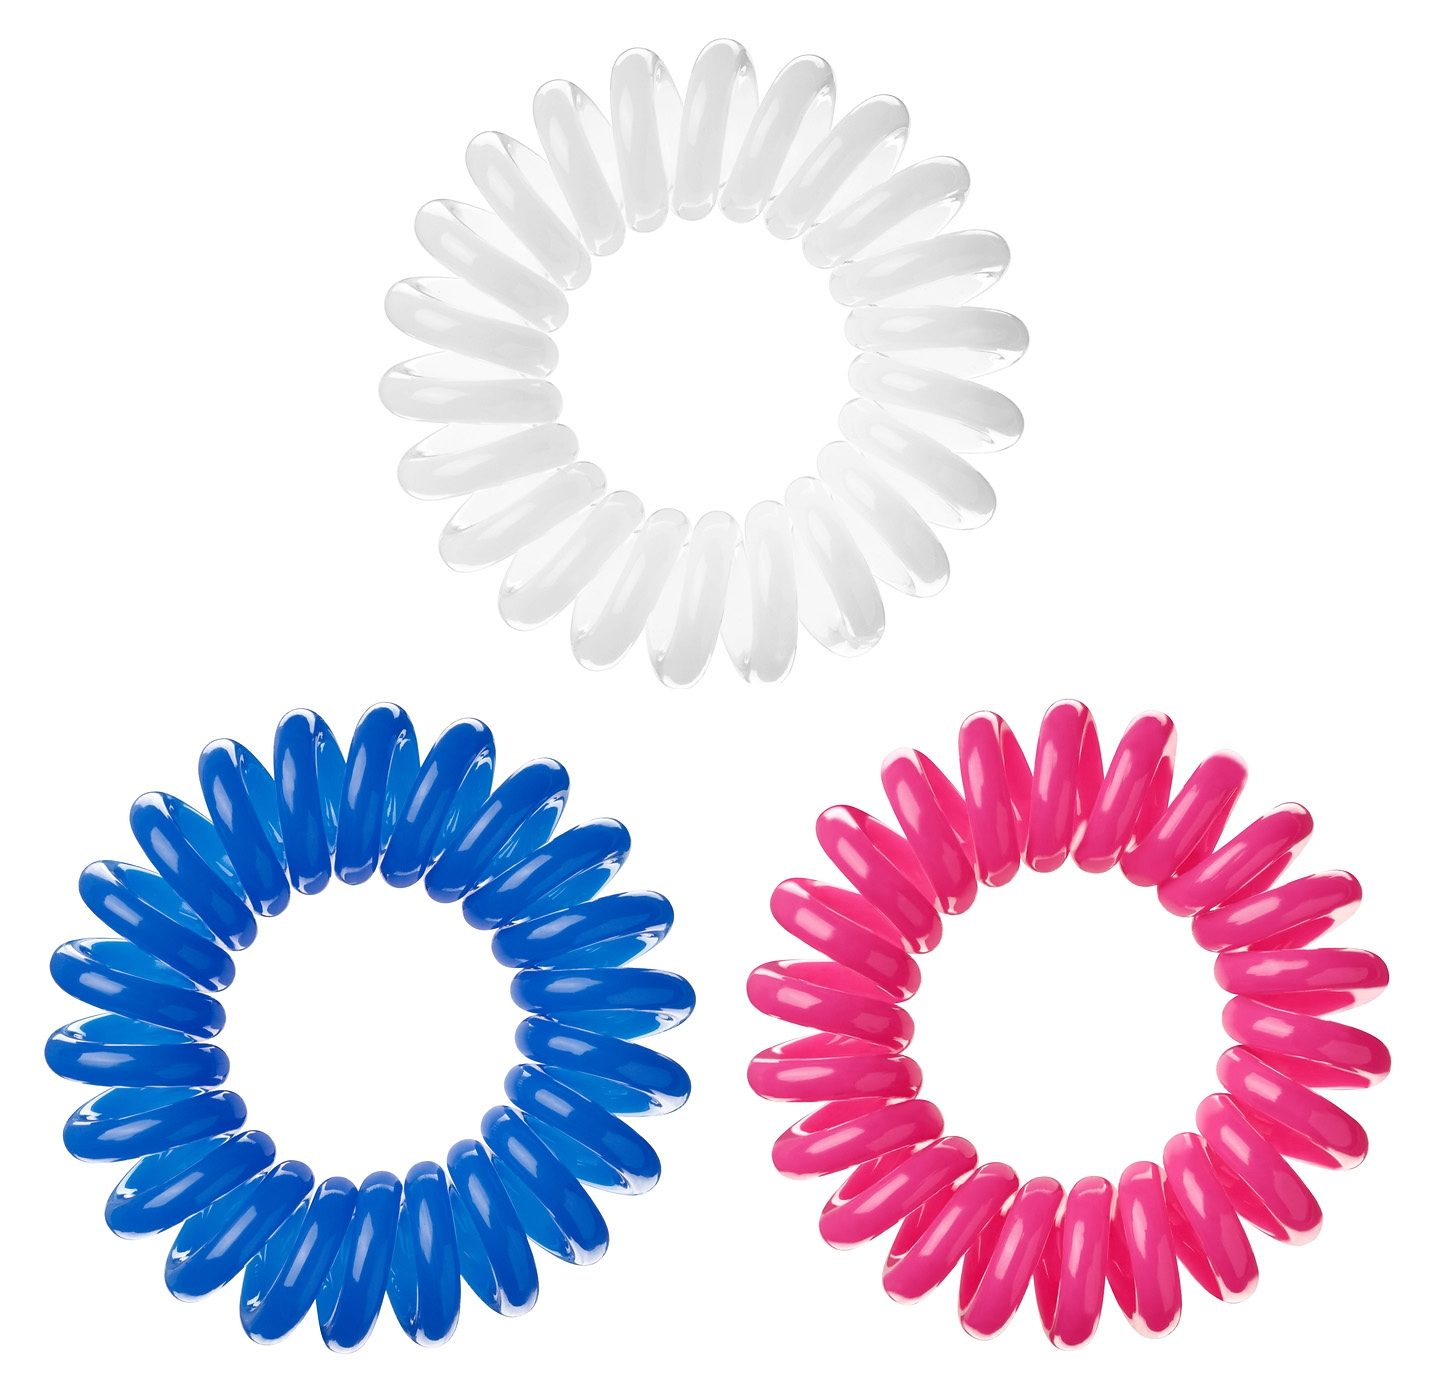 Invisibobble, Spiral-Haargummi (9-tlg. Set)